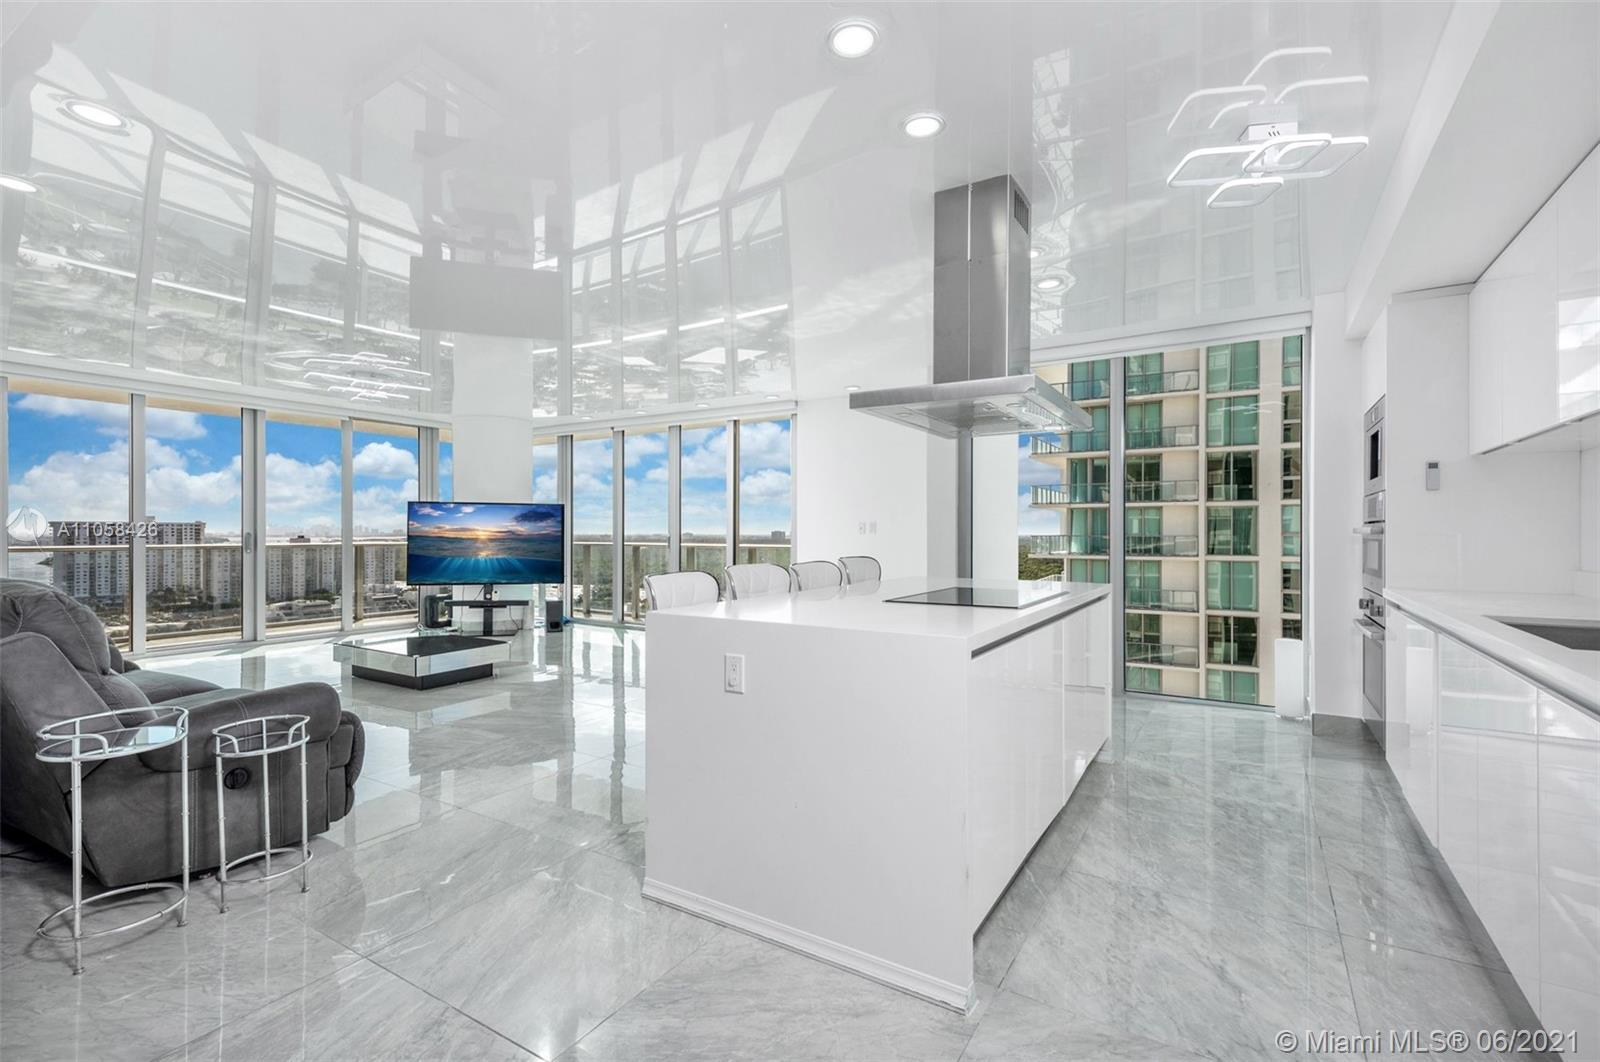 Unit just remodeled and upgraded! Located at the gorgeous Parque Towers this brand new 3 BED, 3,5 BA